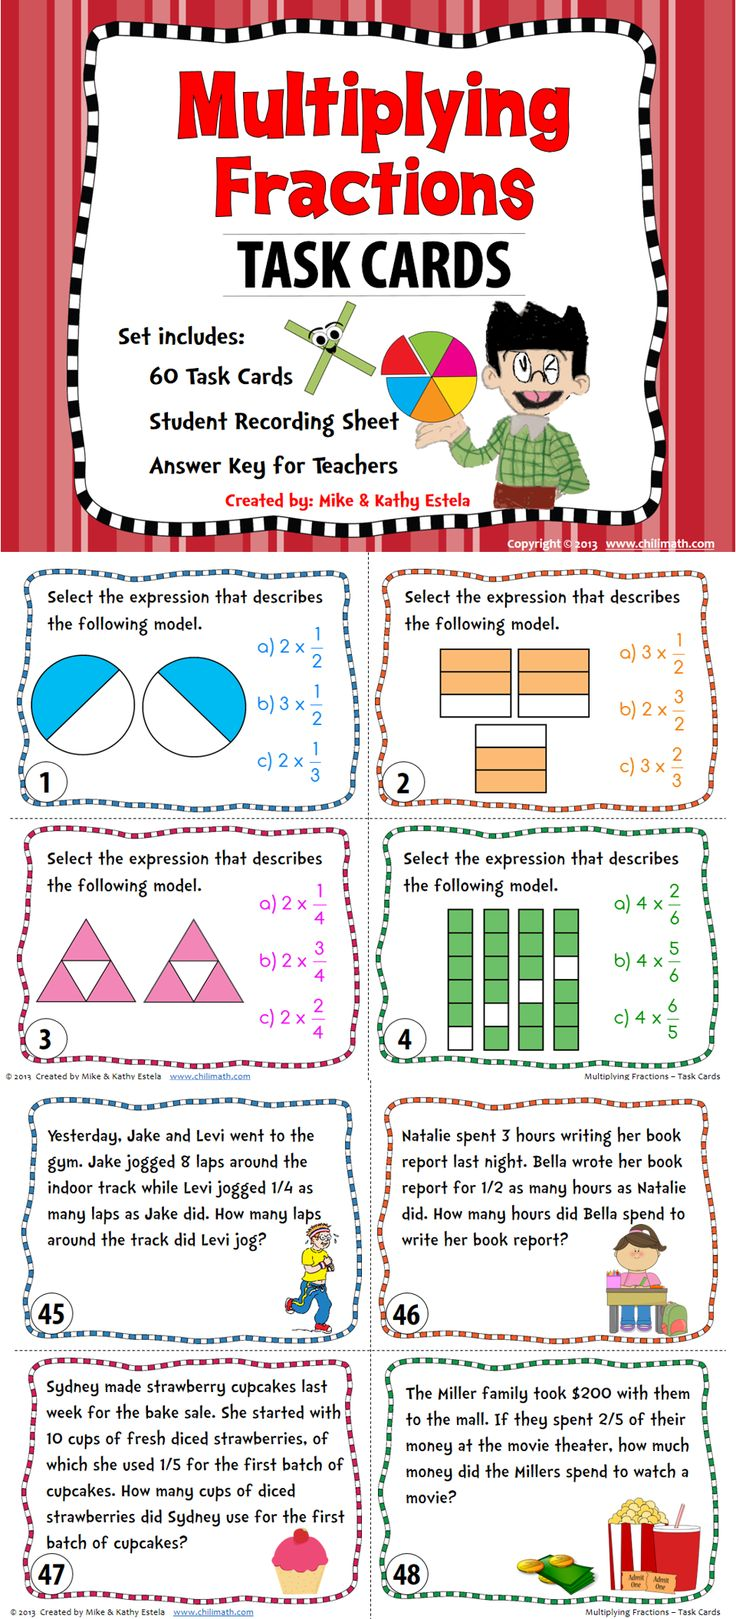 25 great ideas about multiplying fractions on pinterest math fractions teaching fractions. Black Bedroom Furniture Sets. Home Design Ideas